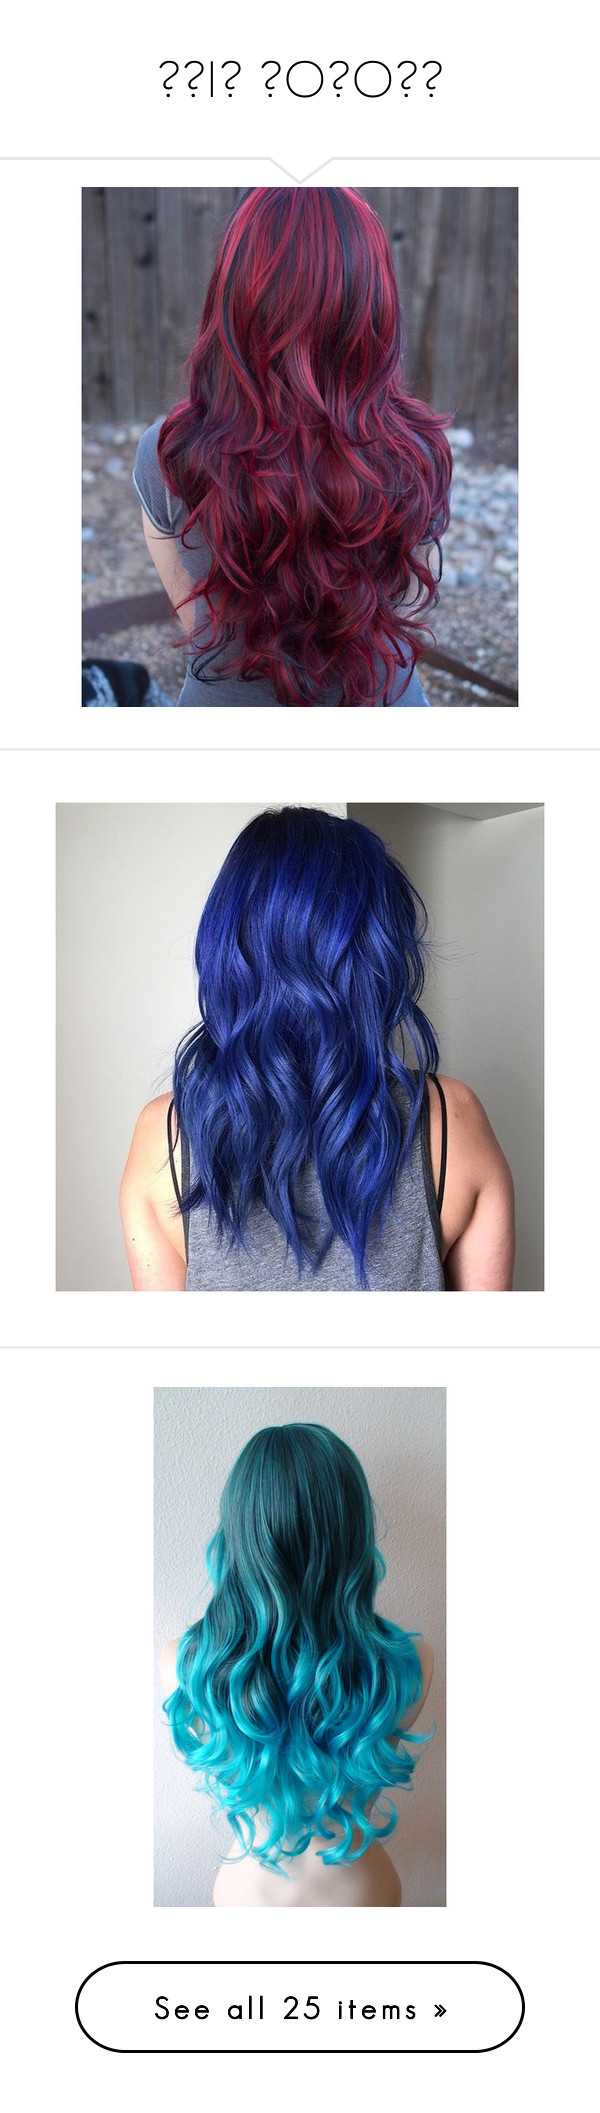 """""""ᕼᗩIᖇ ᑕOᒪOᖇᔕ"""" by ashrose1997 ❤ liked on Polyvore featuring beauty products, haircare, hair styling tools, hair, wig, hair styles, wigs, hairstyles, blue and hair color"""